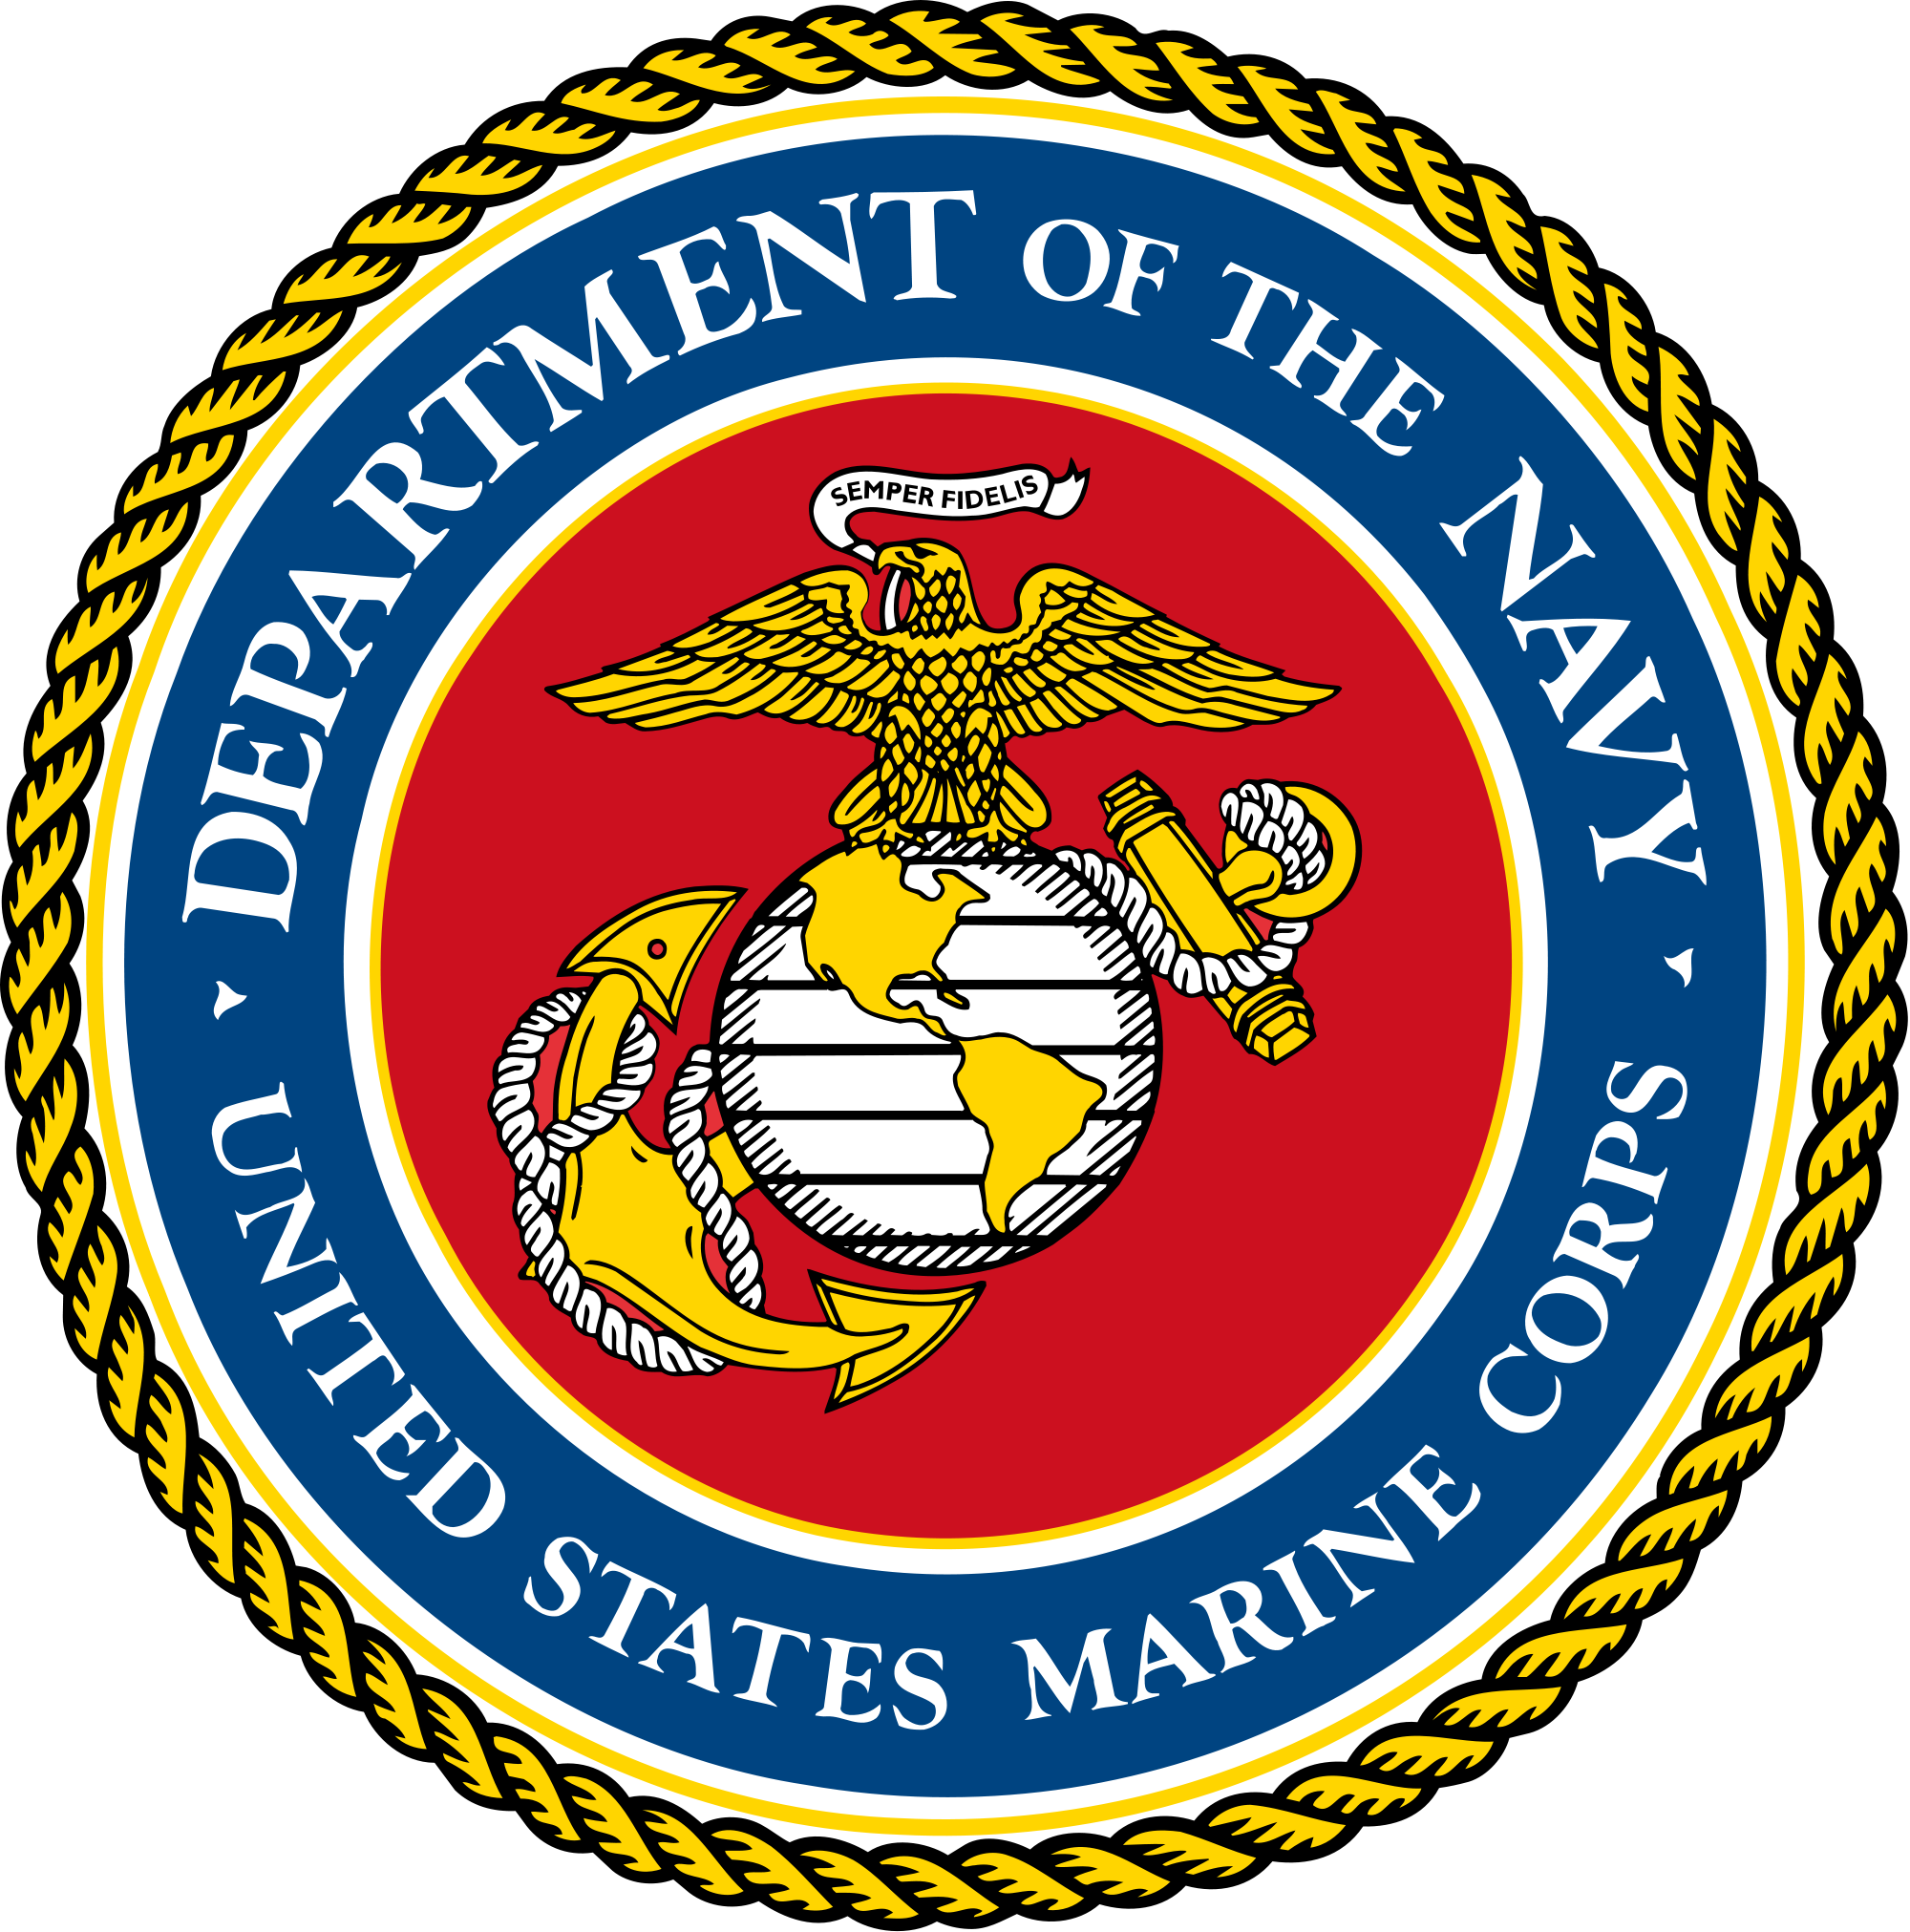 The Marine Corps Seal